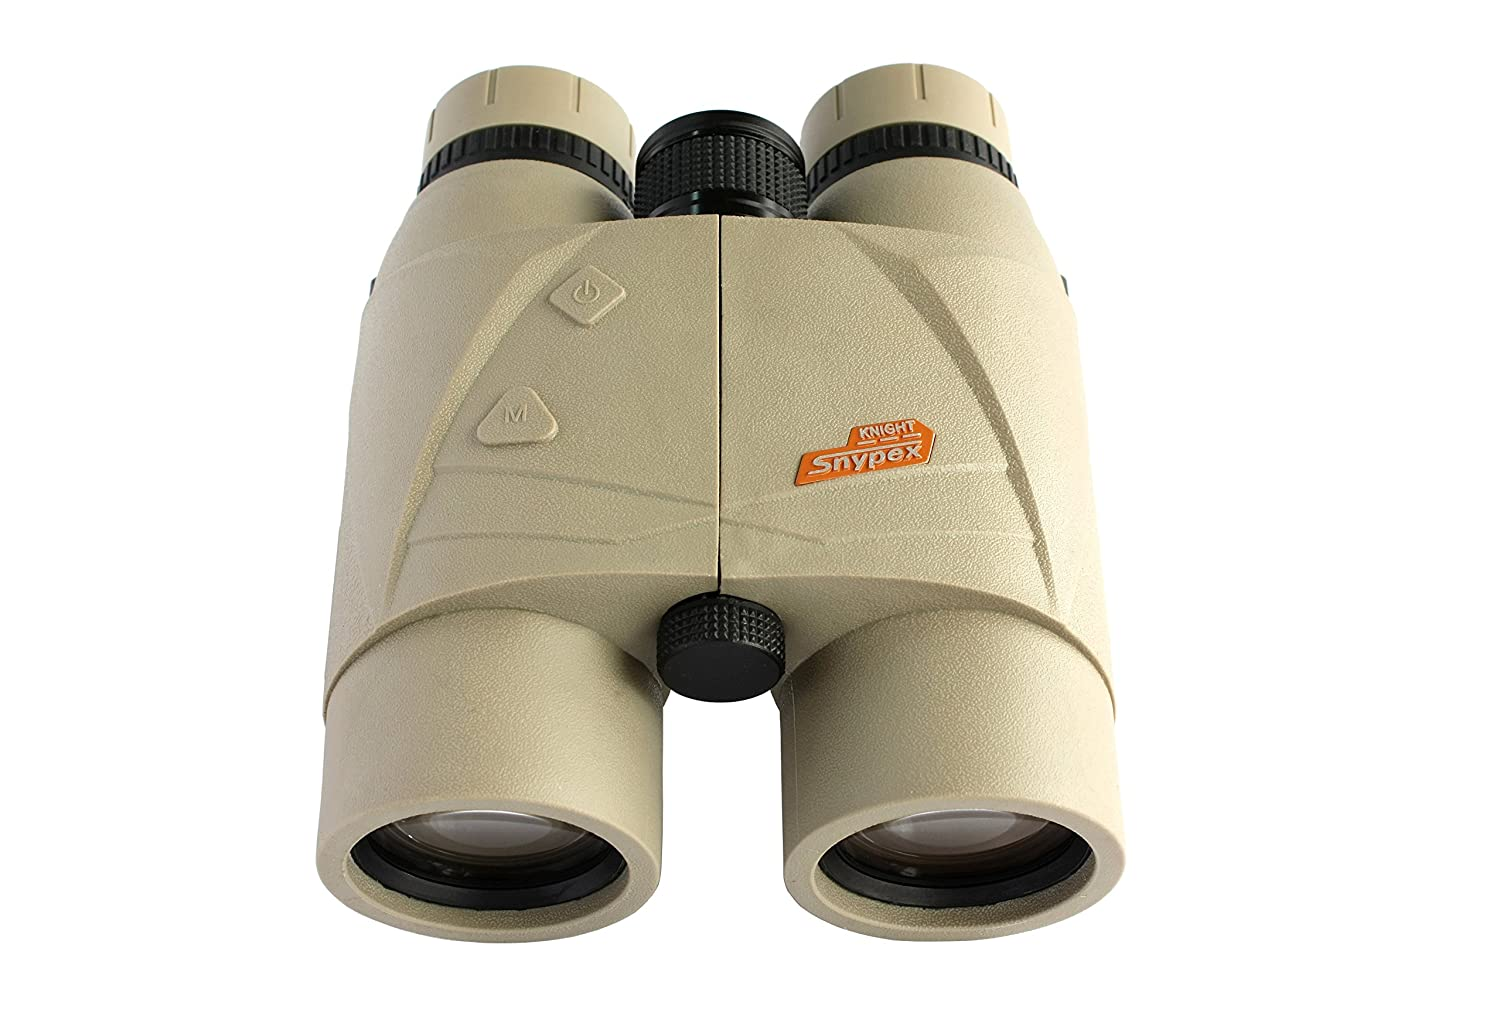 snypex Arm Yourself with The New Knight LRF1800 8×42 Precision Tactical 1.2 Miles Laser Rangefinder Binoculars, Crime Fighting Eyes for Cops